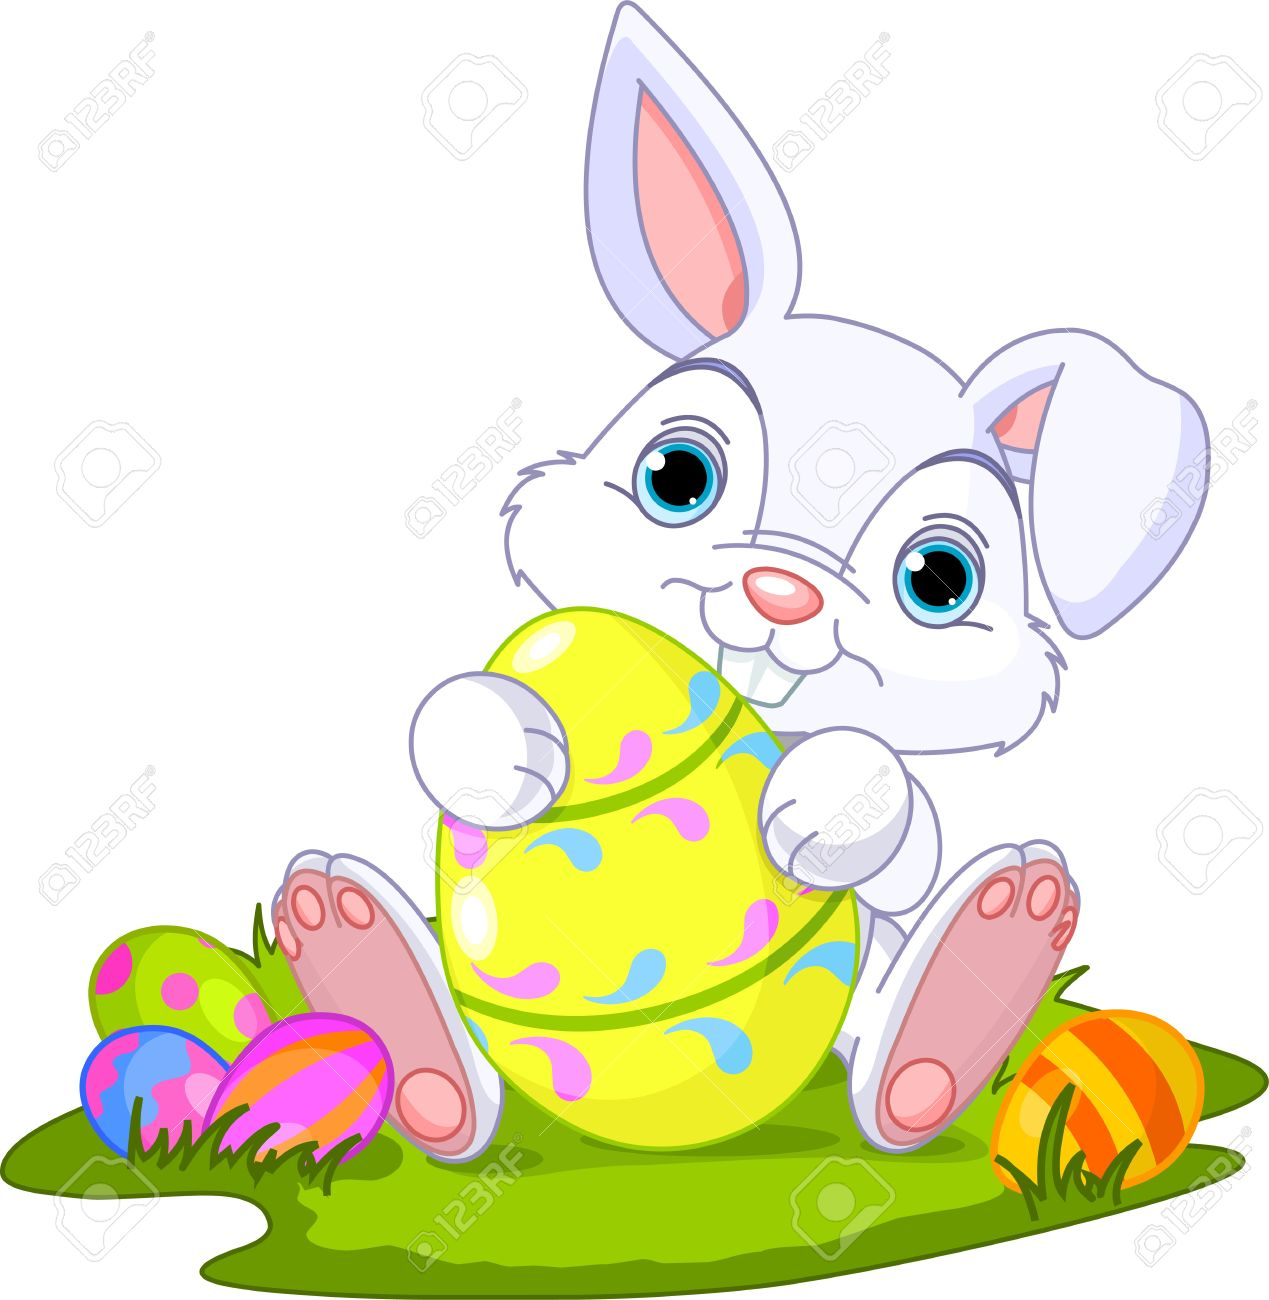 Cute Easter Bunny holding Easter Egg Stock Vector - 12807313